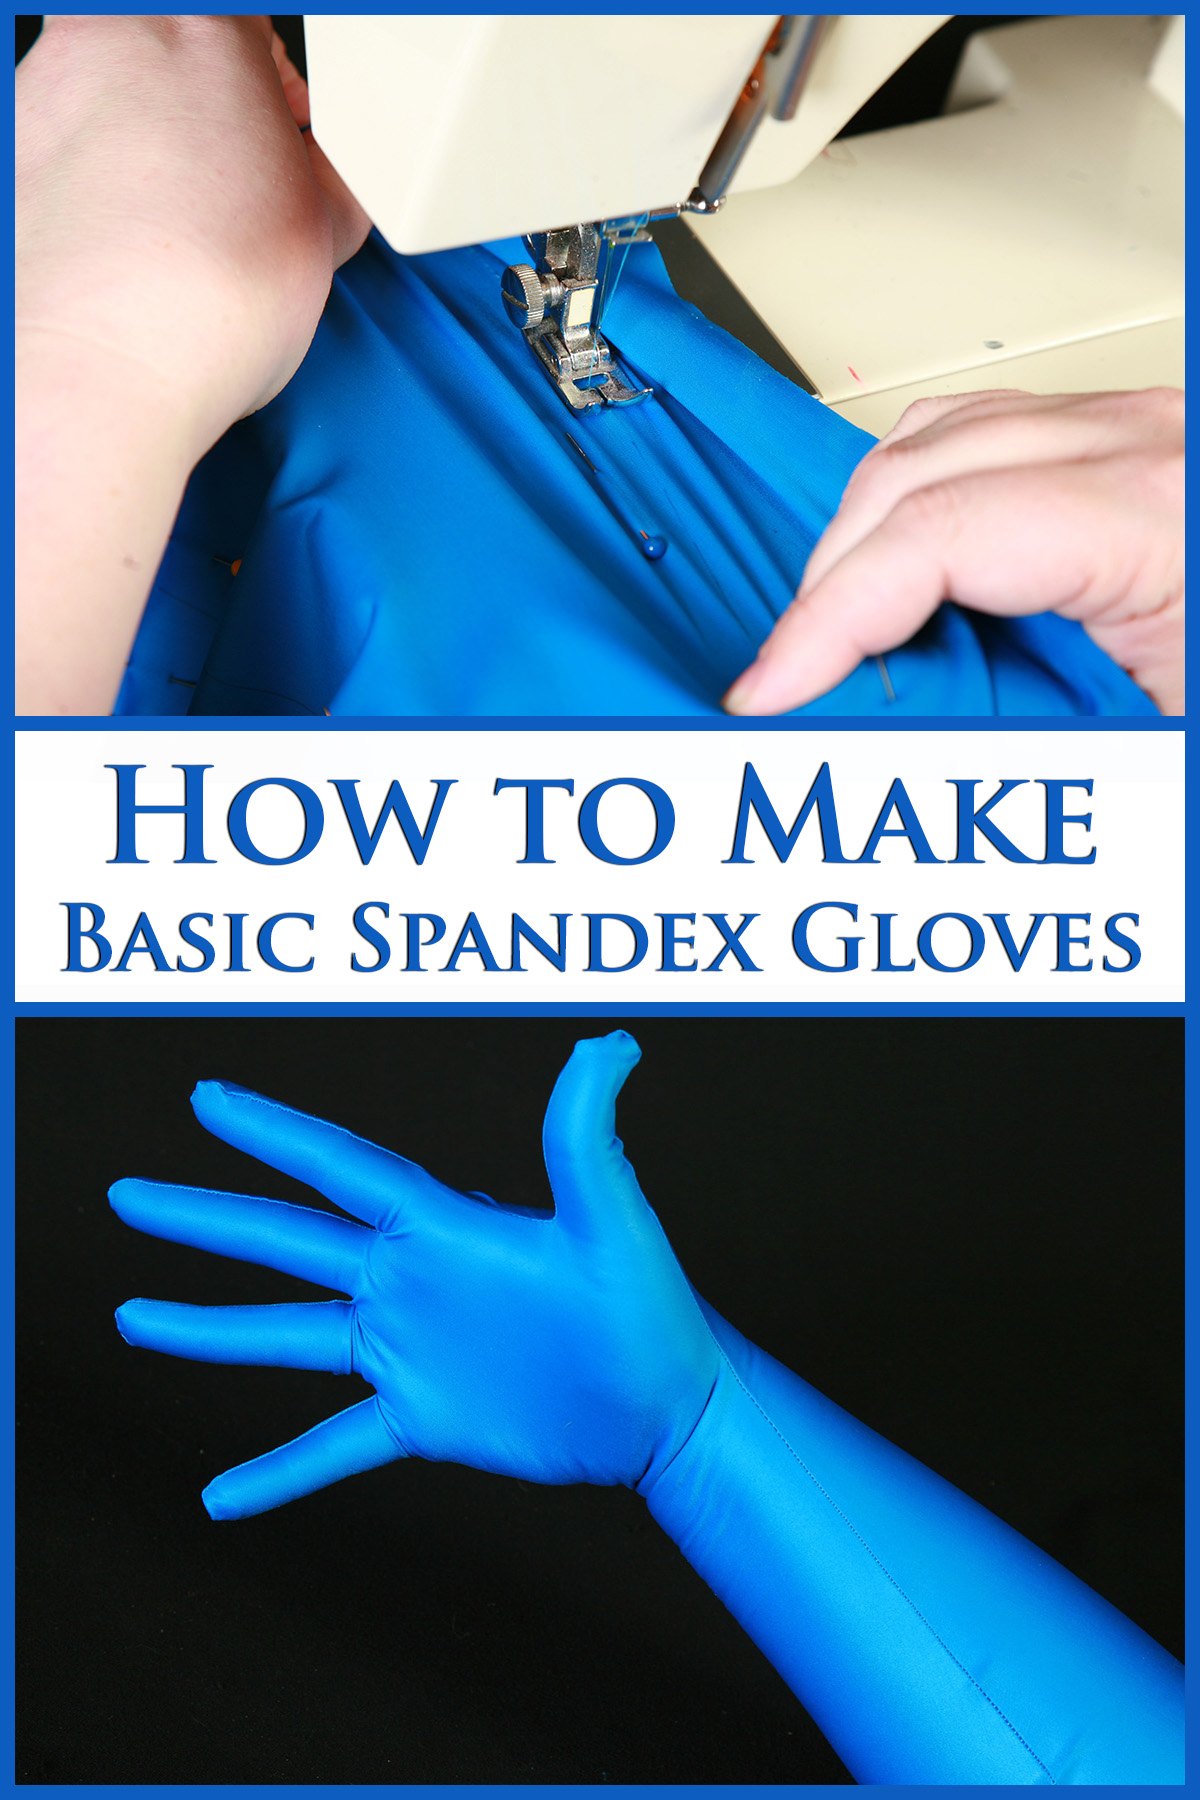 A two part compilation image showing blue spandex being sewn in a sewing machine, and a hand wearing a blue spandex glove against a black background. Text says How to Make Basic Spandex Gloves.